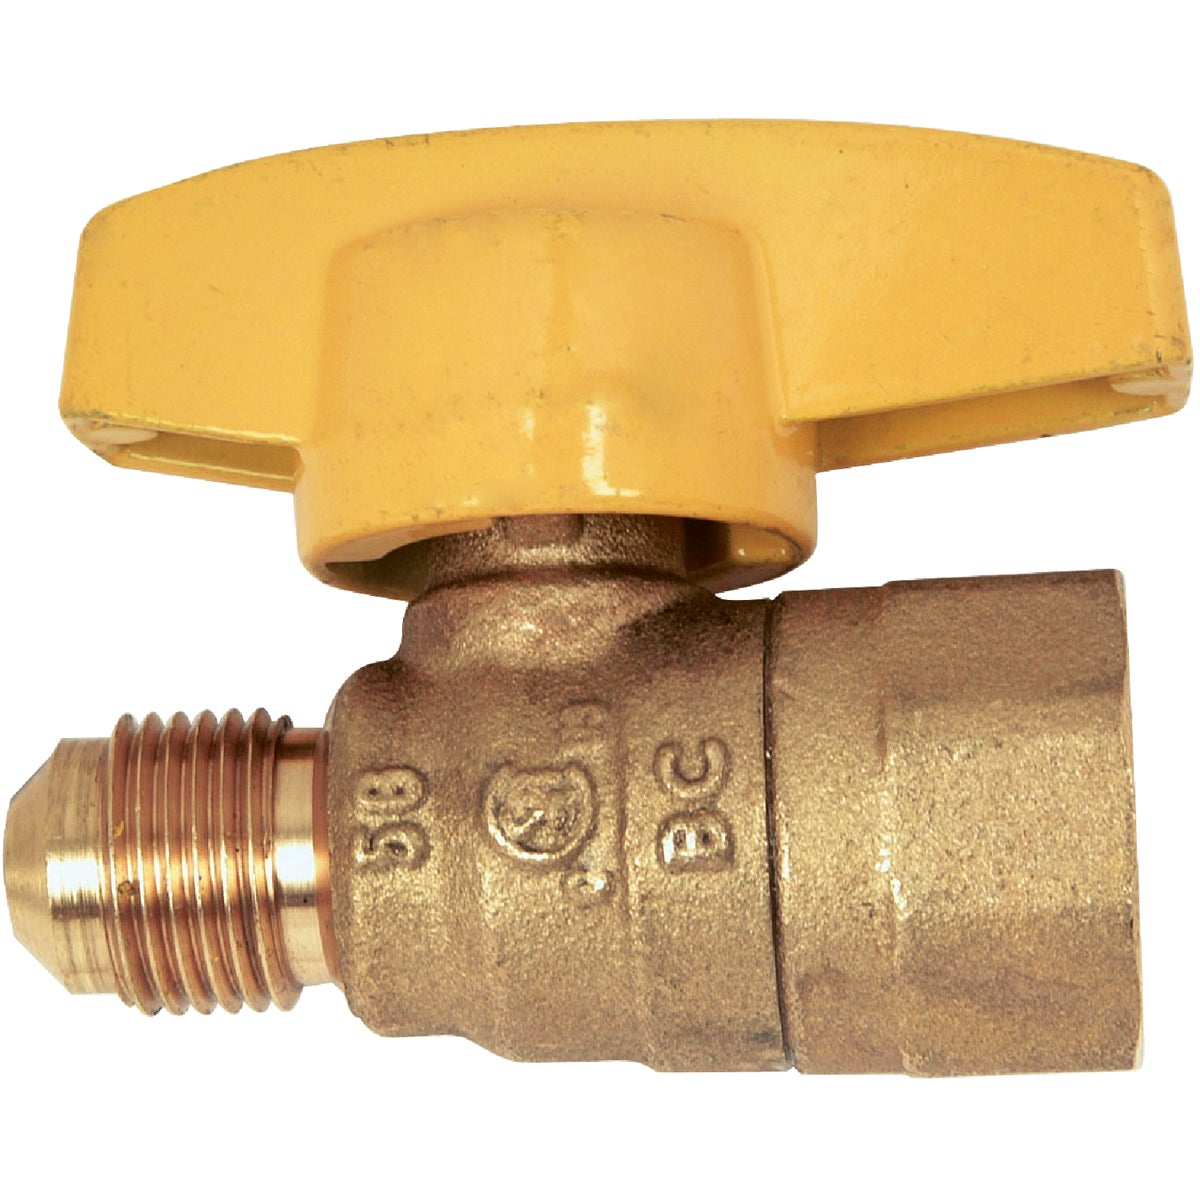 Brass Craft 3/8X1/2 GAS VALVE PSSL-12